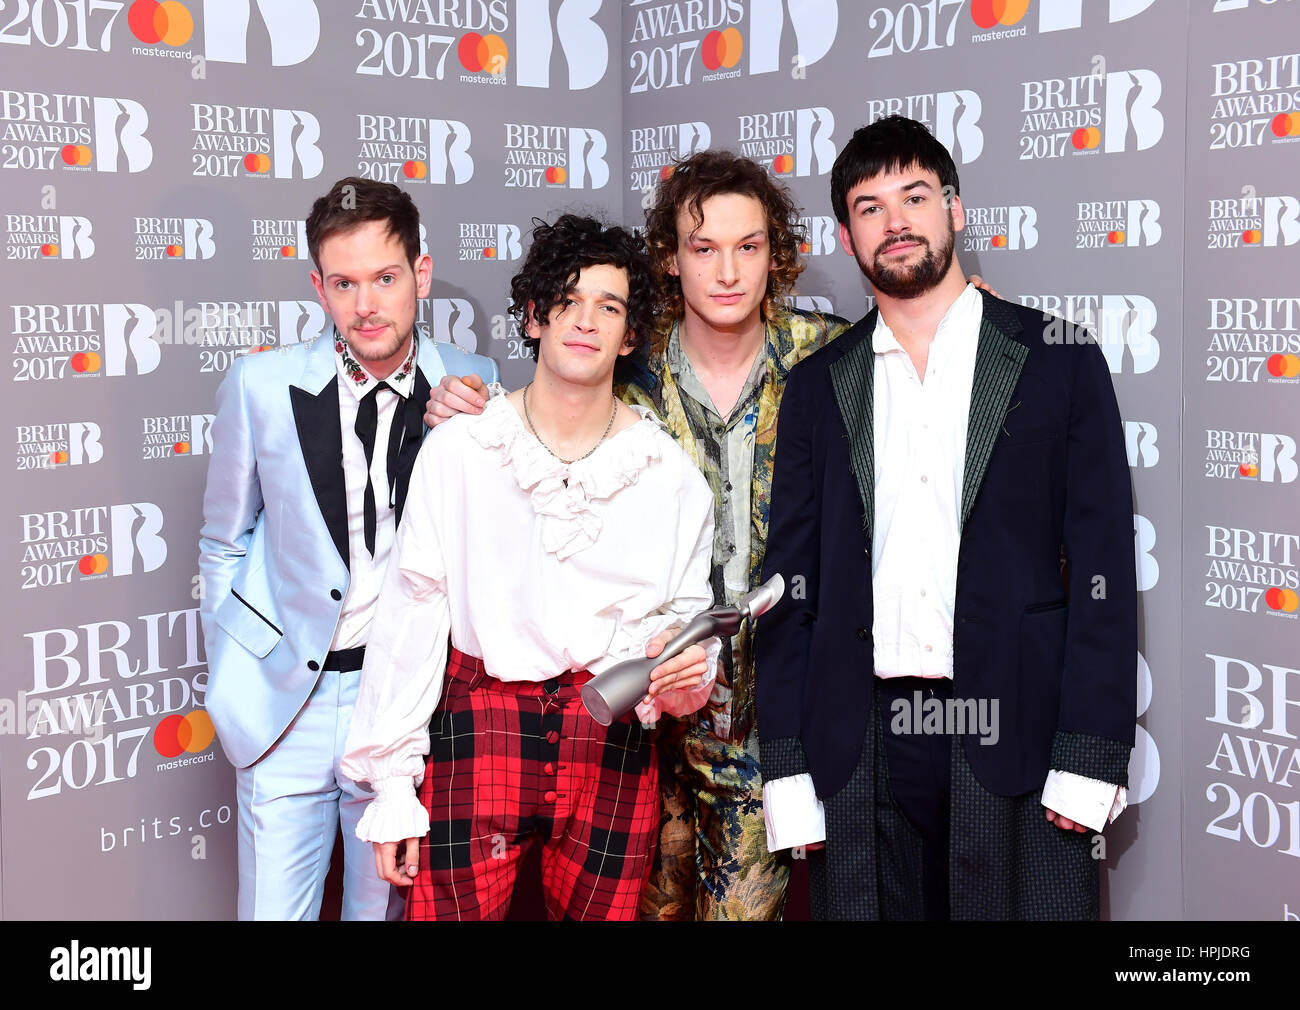 The 1975's Adam Hann (L - R), George Daniel, Ross MacDonald and Matthew Healy with the Best British Group Award - Stock Image